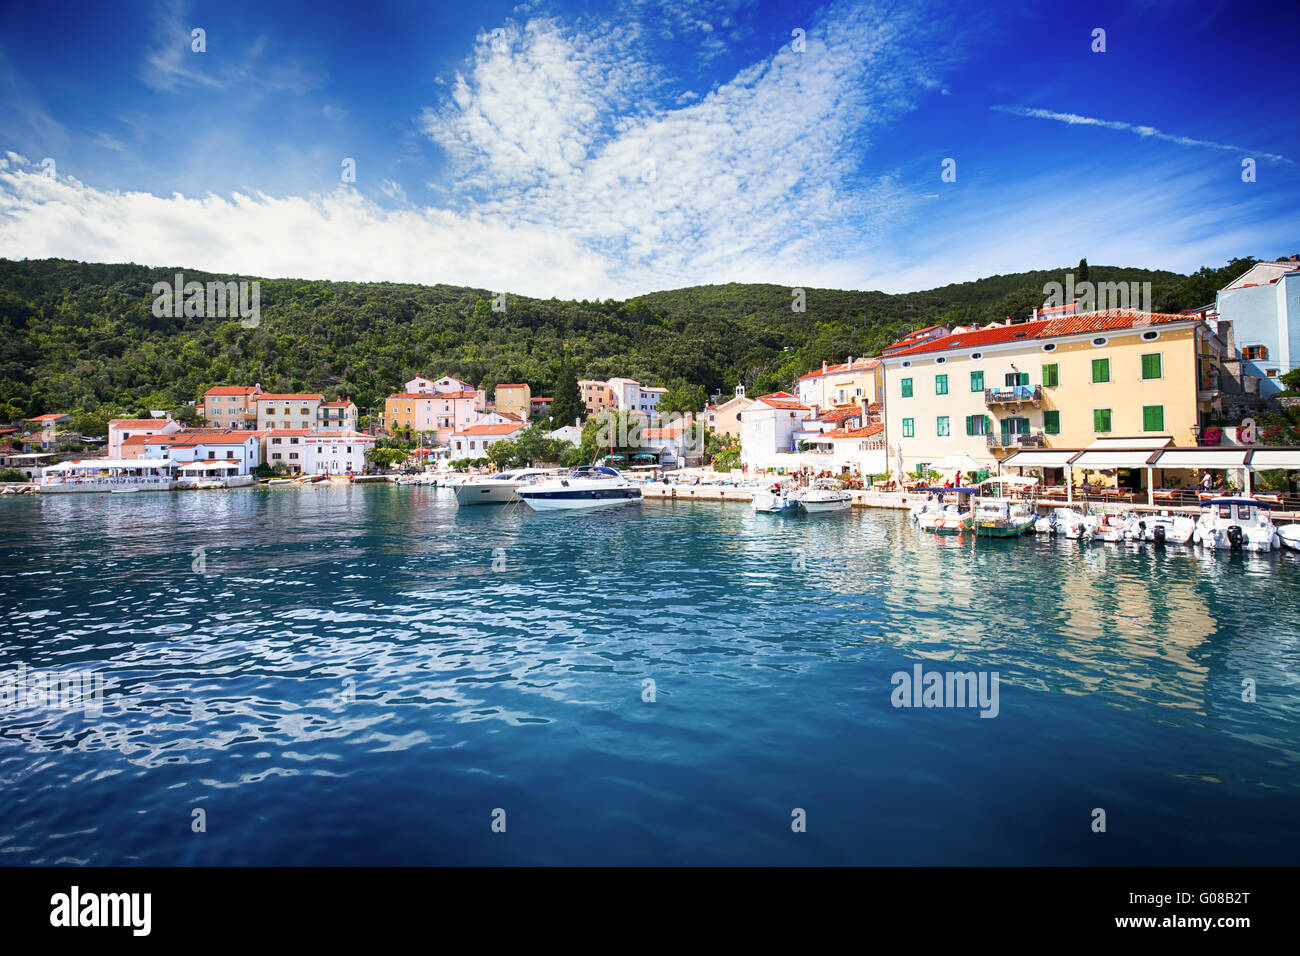 VALUN, CROATIA - August 26, 2914: View to the village Valun with harbor and boats, Cres island, Croatia Stock Photo